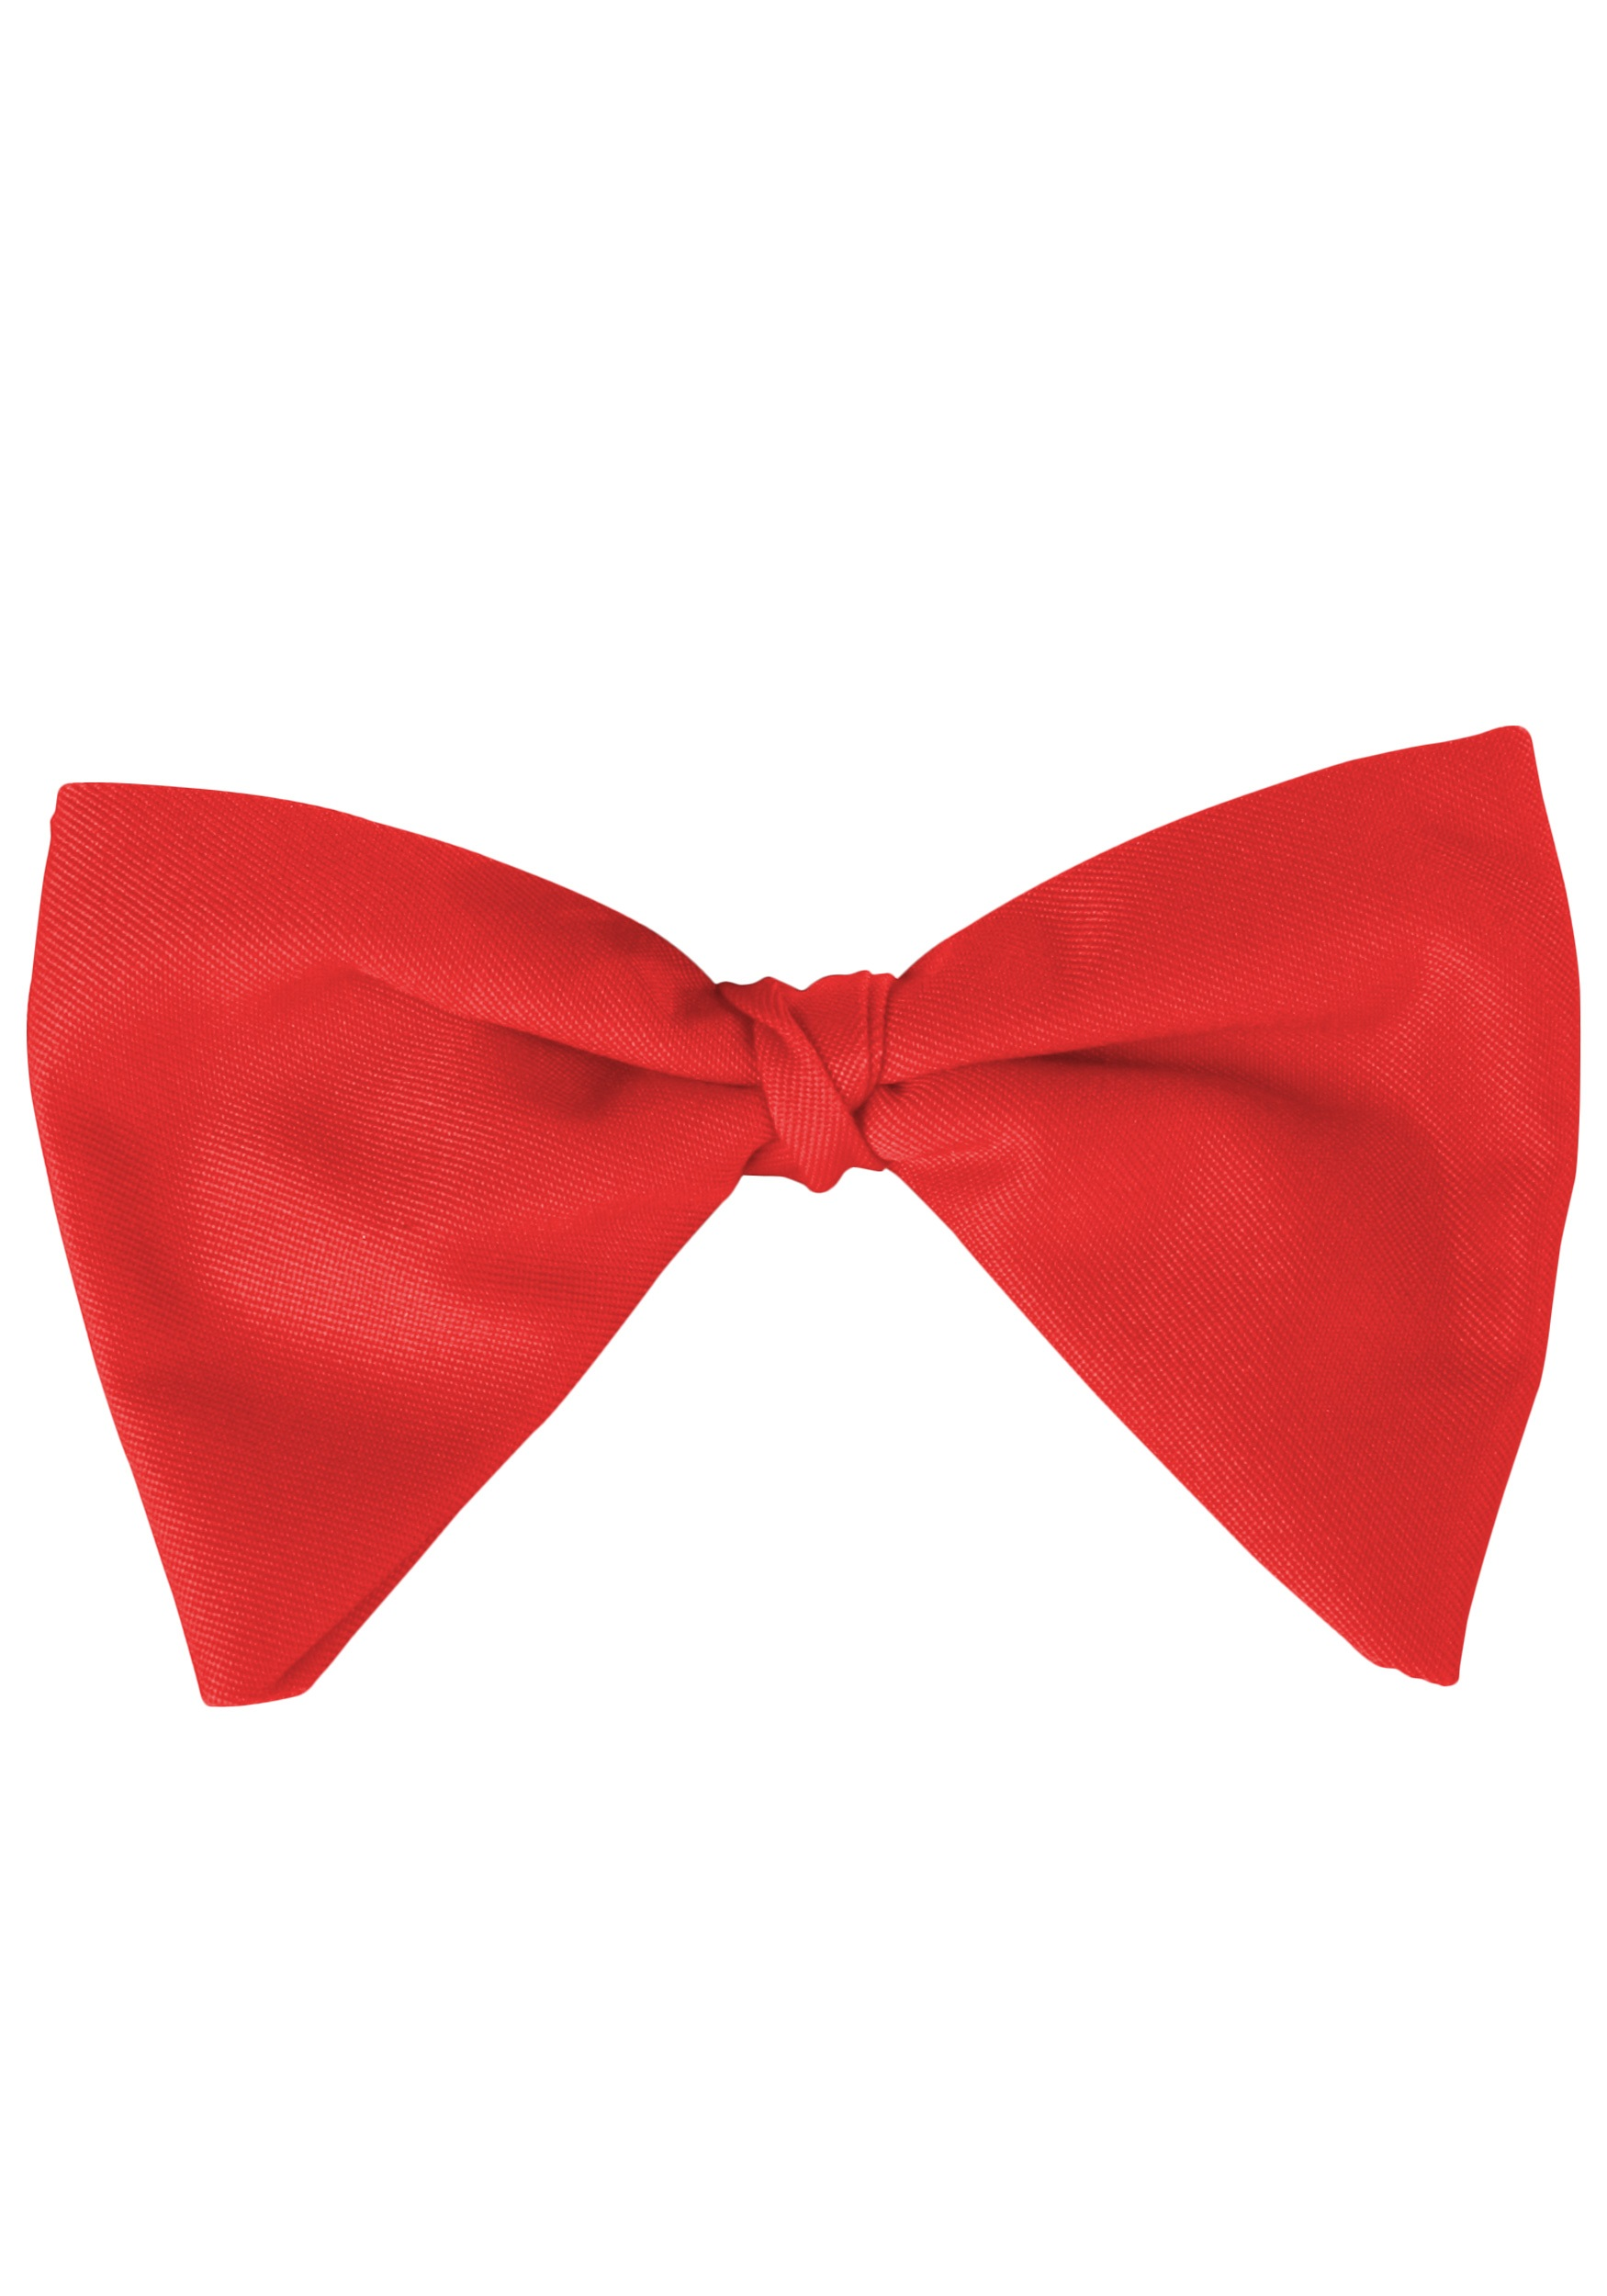 tie bow photo - 1